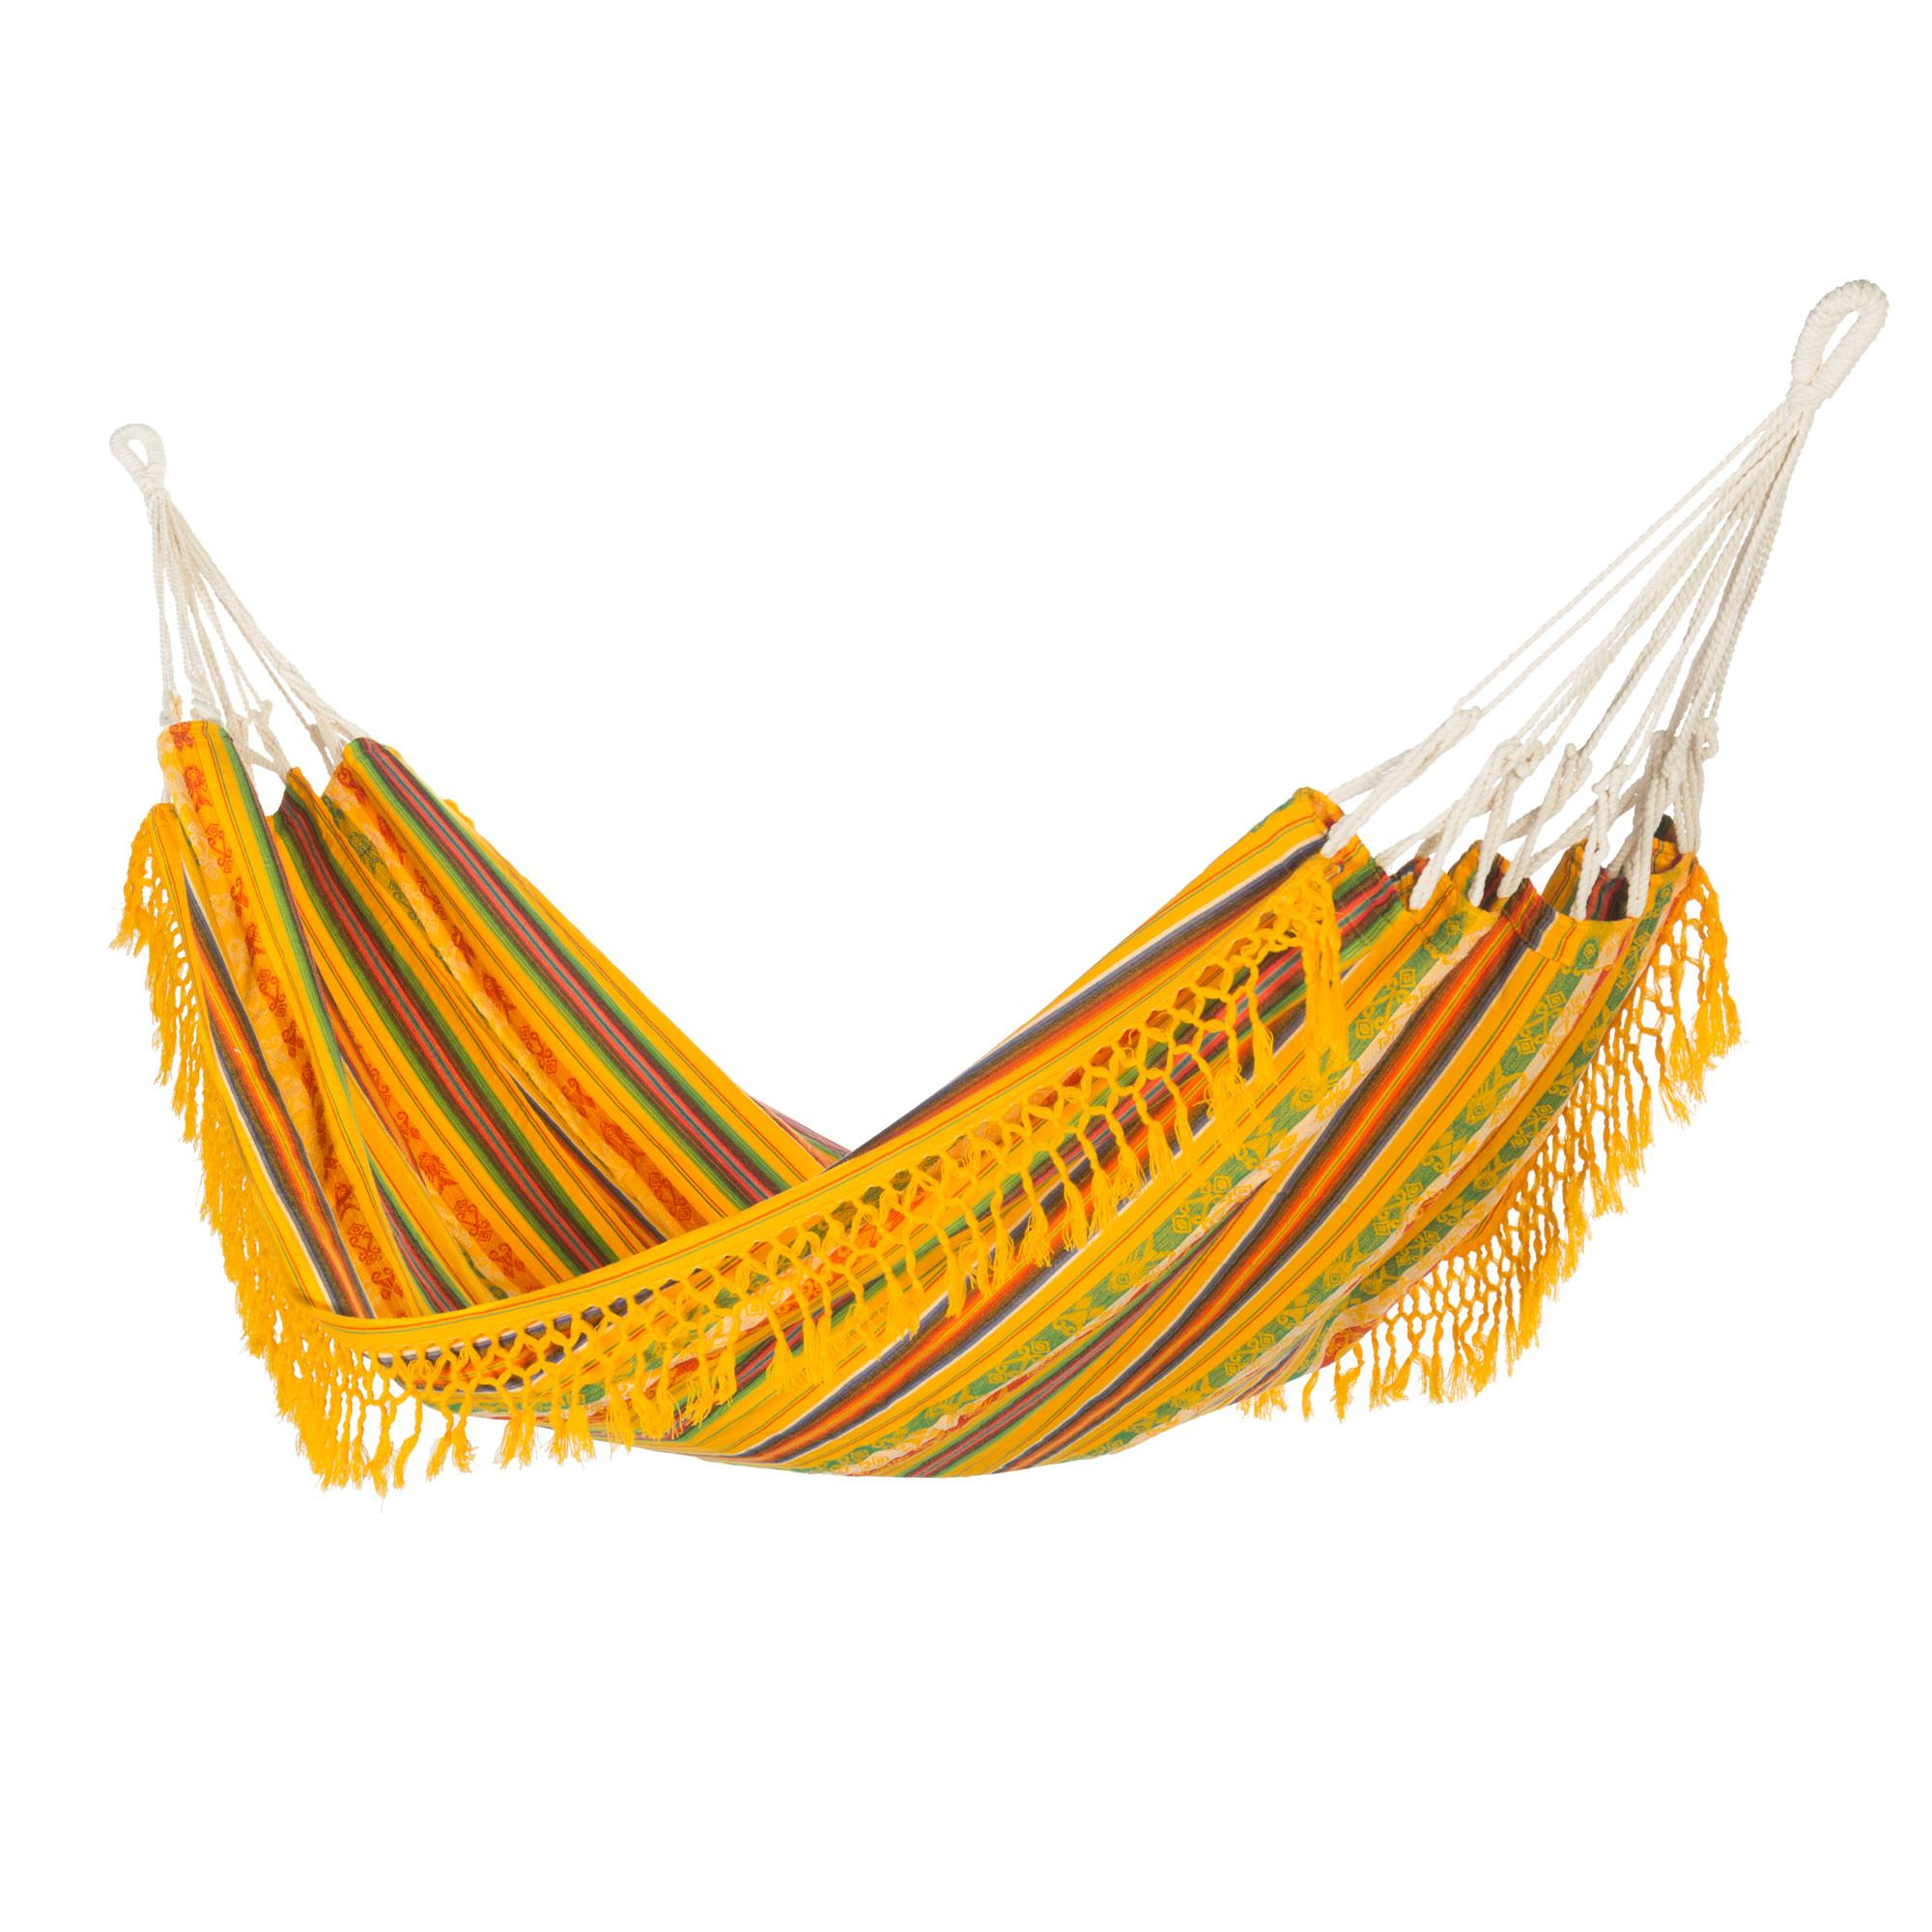 algoma hammocks chair com nicolasprudhon for stand make small hammock rope swing a how sale pattern to